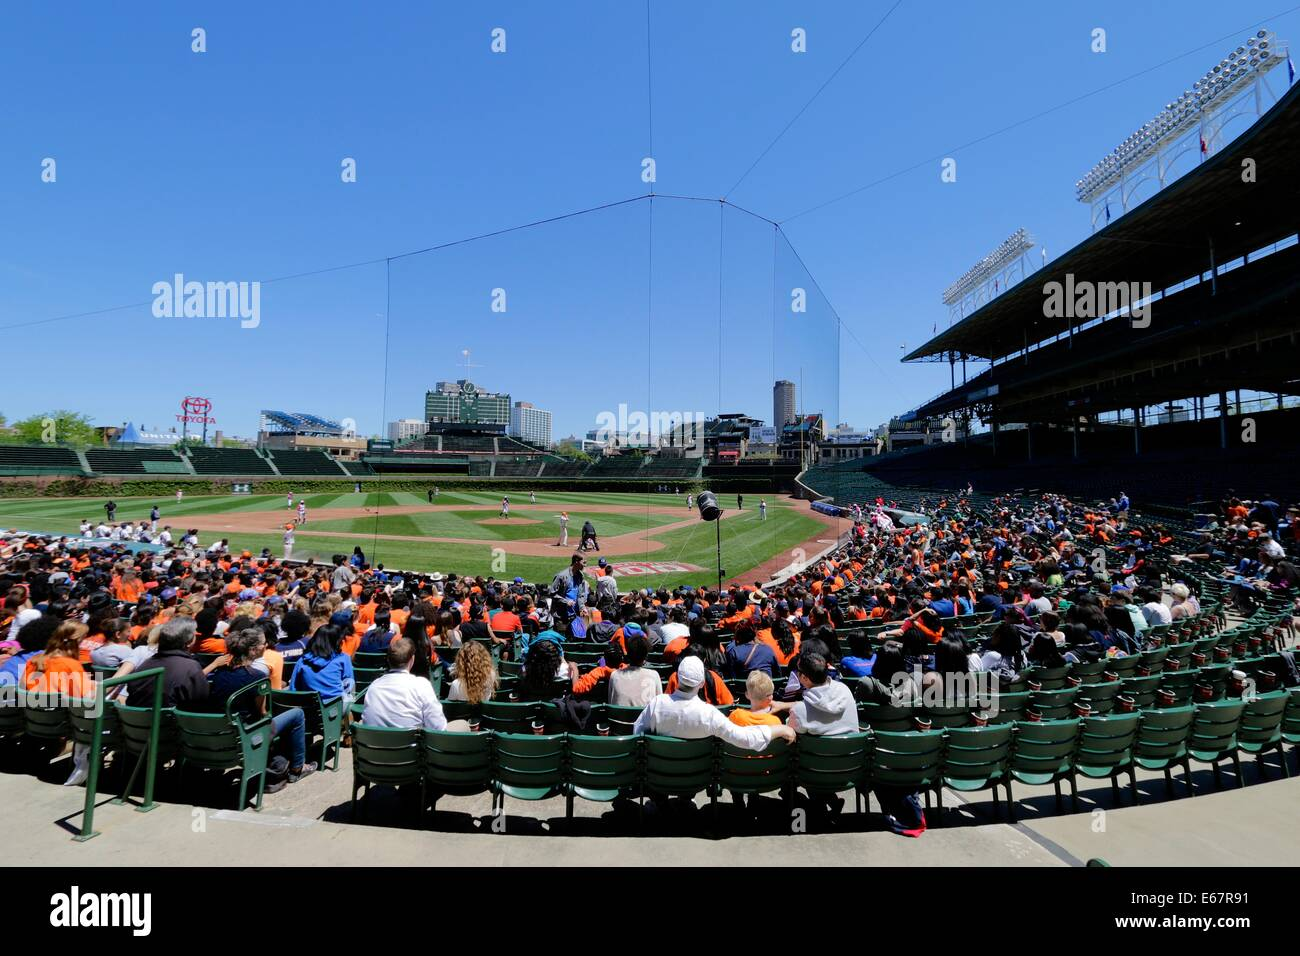 Wrigley field stock photos wrigley field stock images alamy high school baseball playoff game in wrigley field chicago illinois whitney young high amipublicfo Gallery